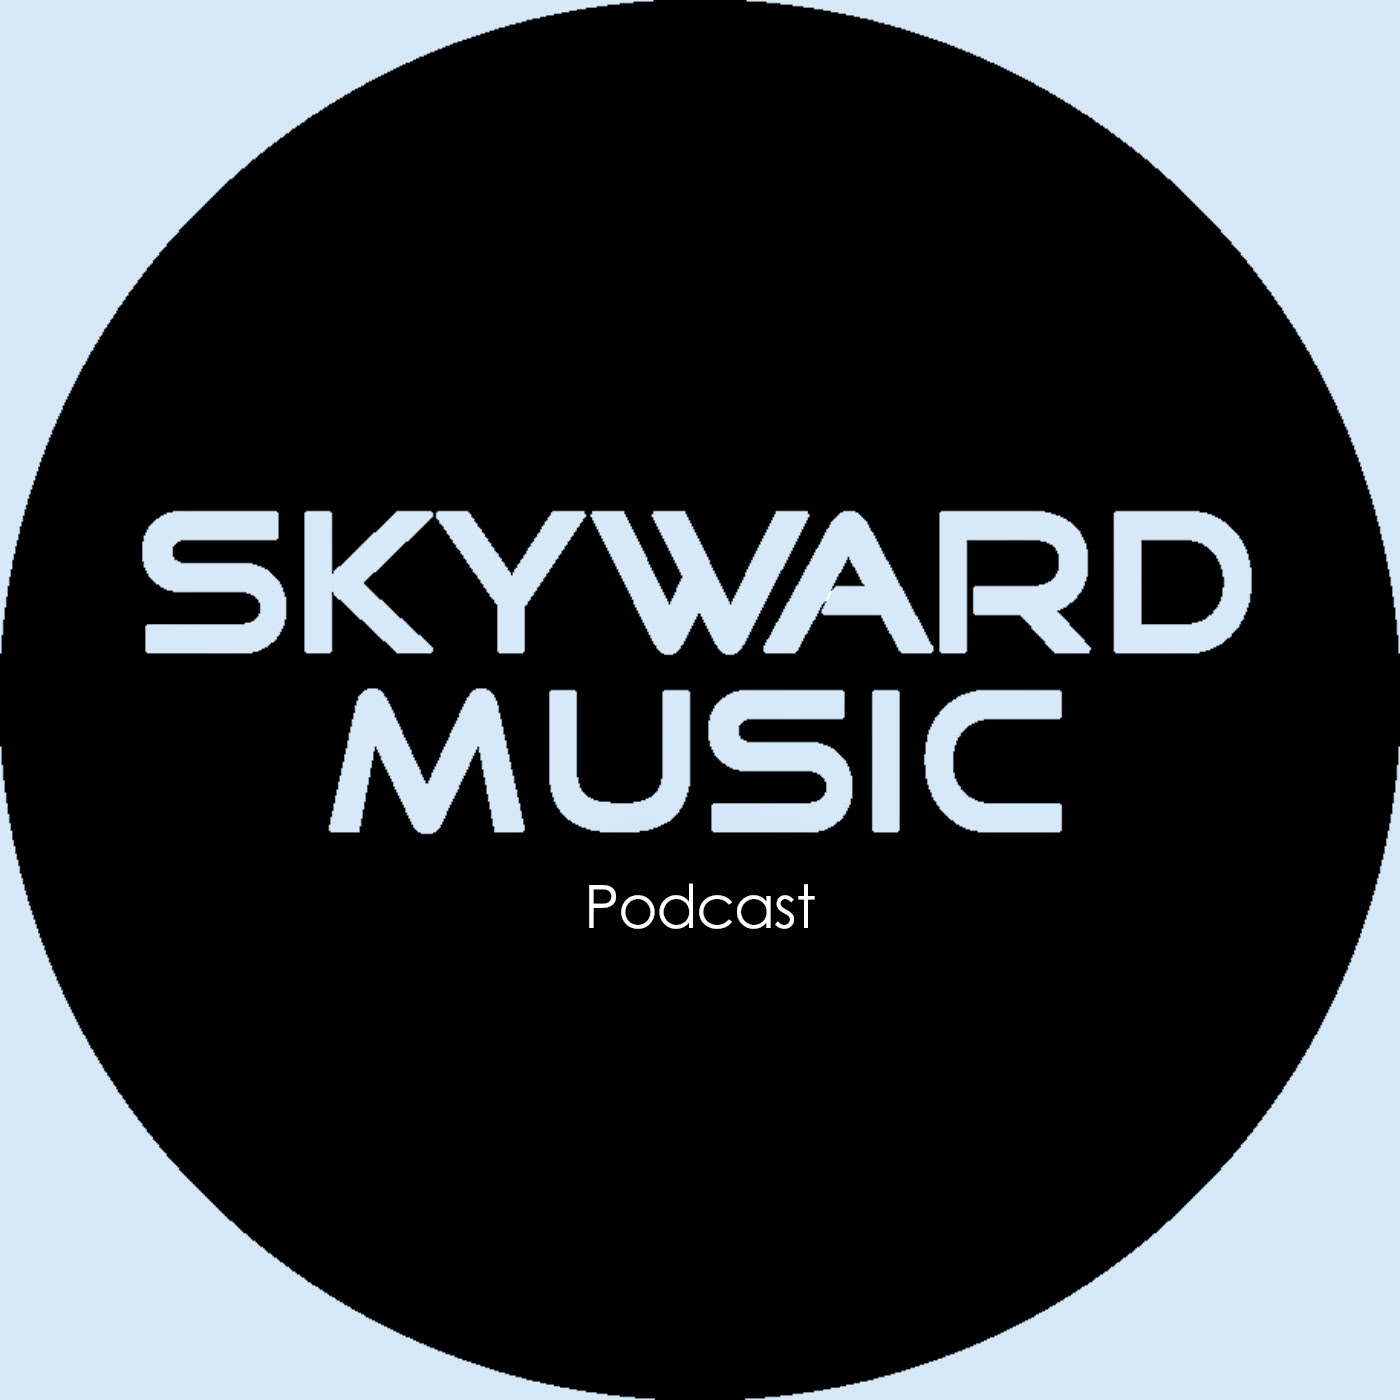 Skyward Music Podcast